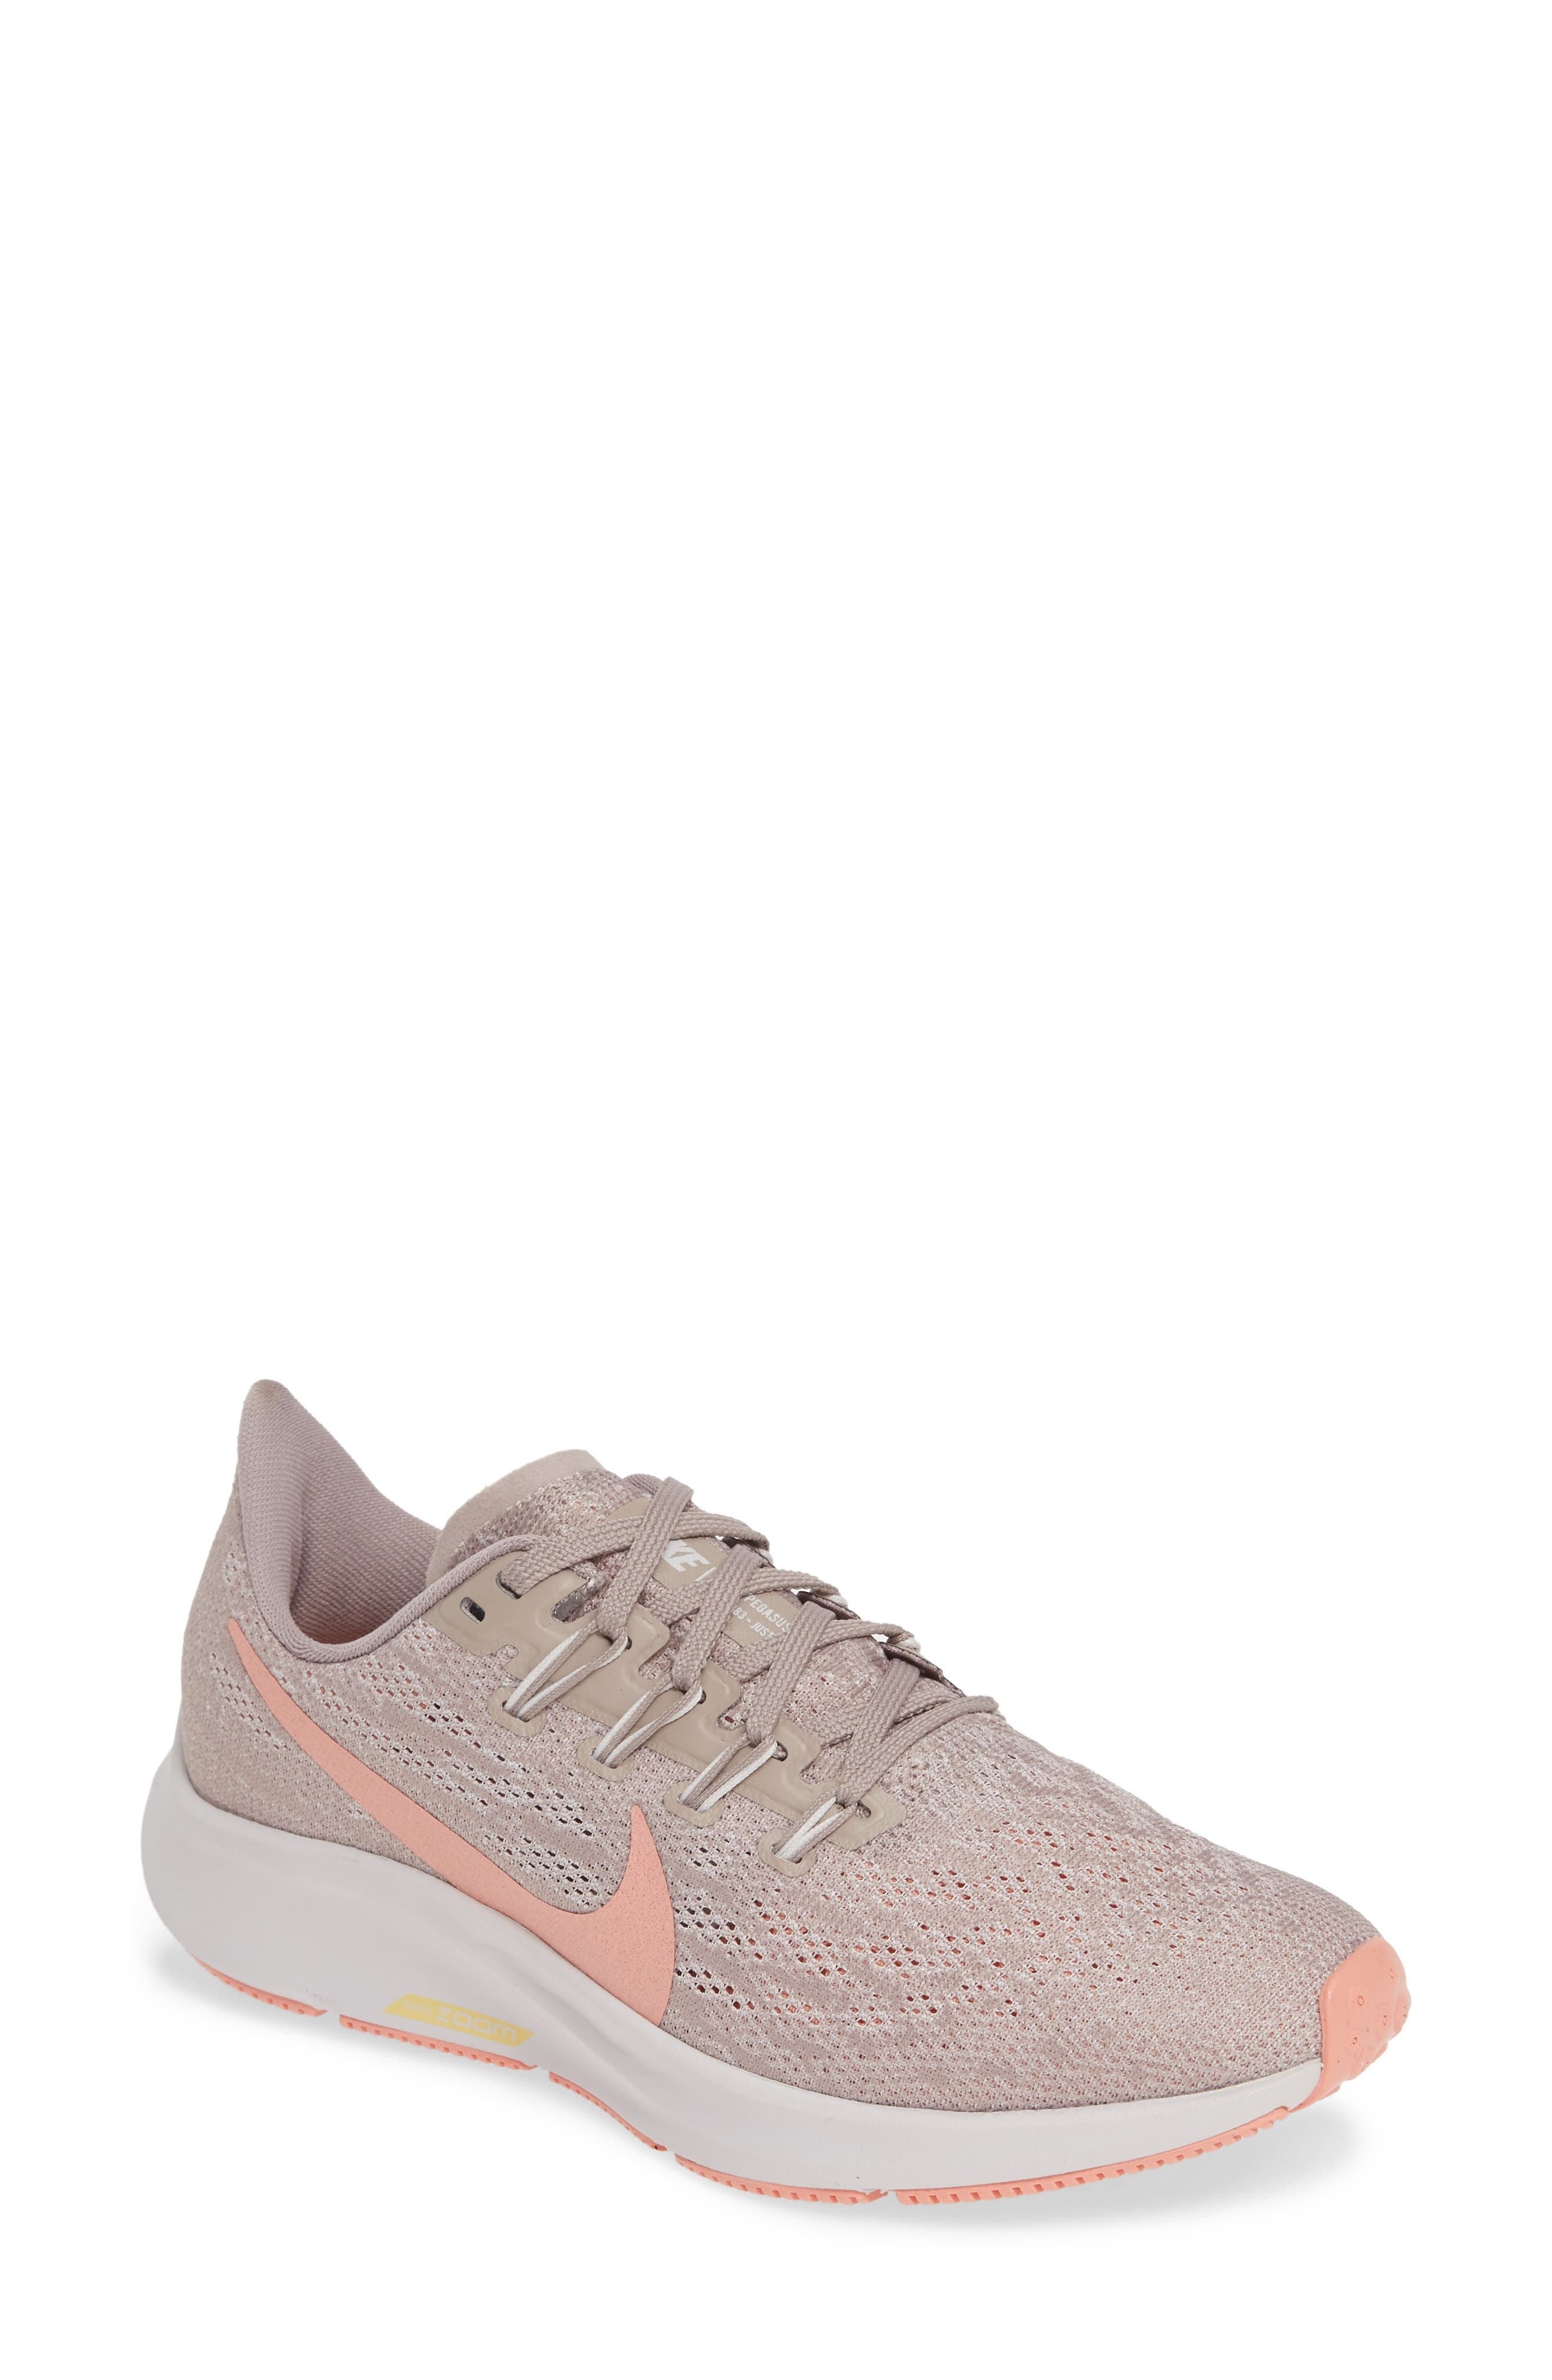 Women's Pink Shoes | Nordstrom